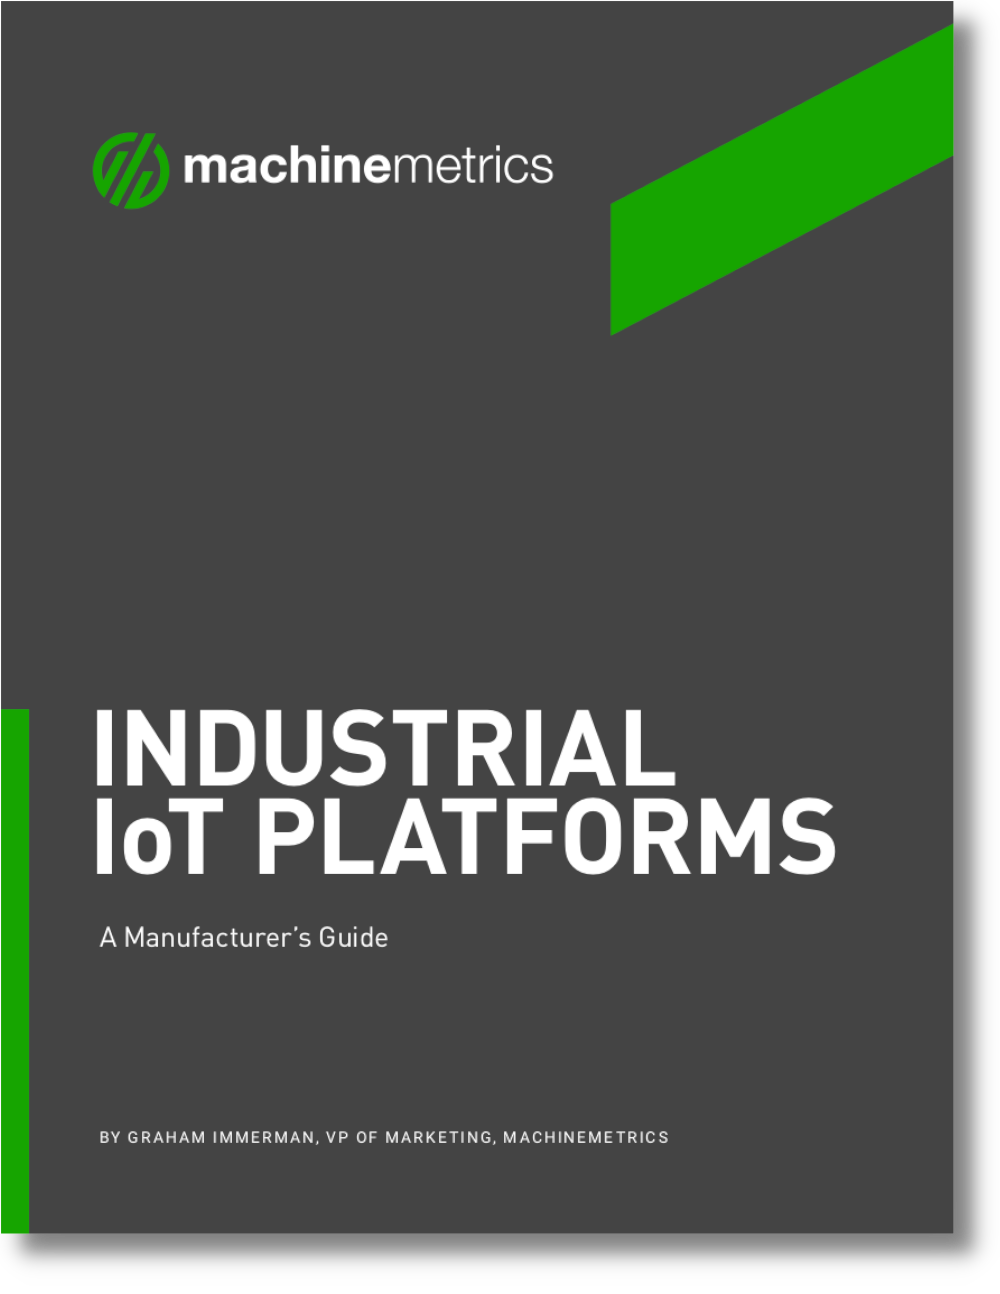 A Manufacturer's Guide to Industrial IoT Platforms